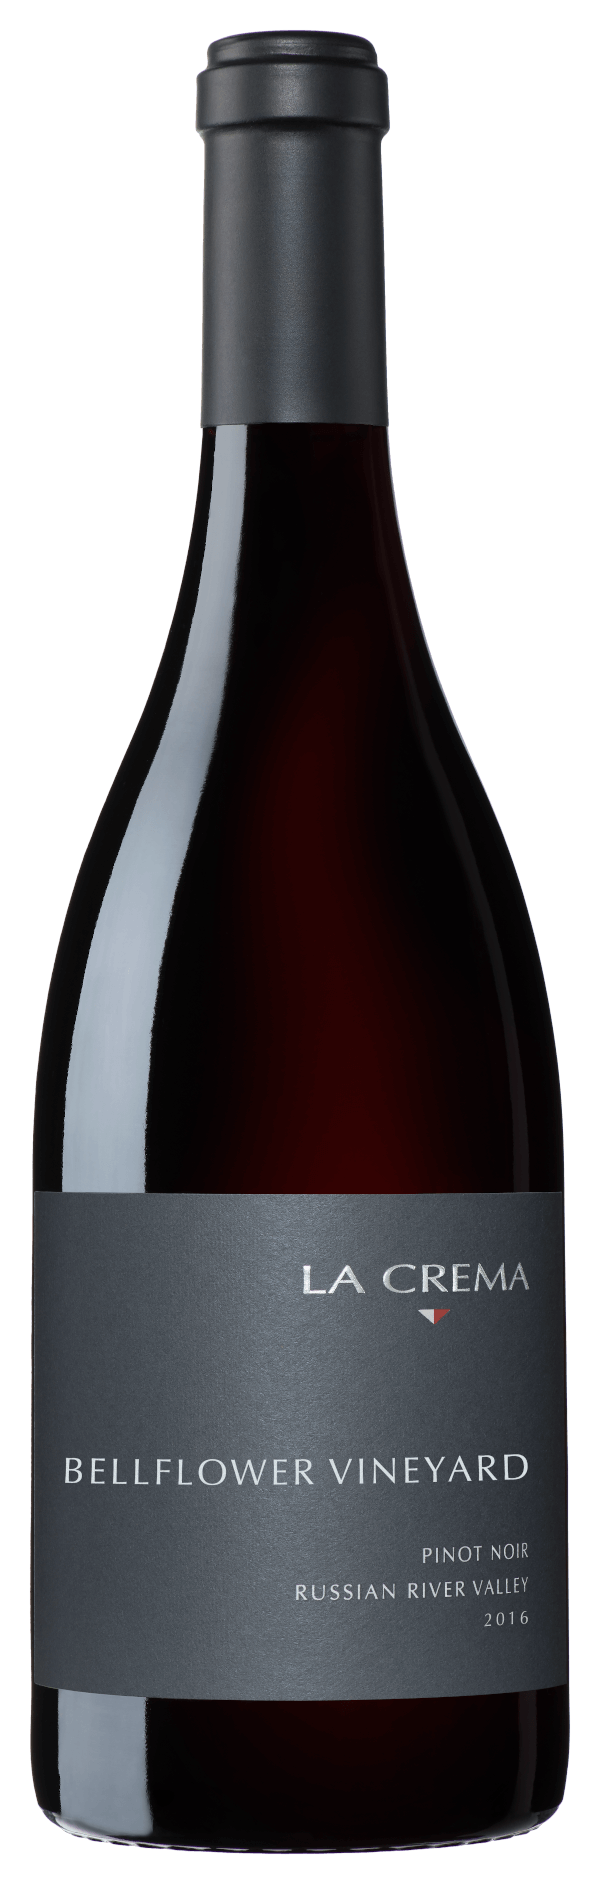 2016 Bellflower Vineyard Pinot Noir